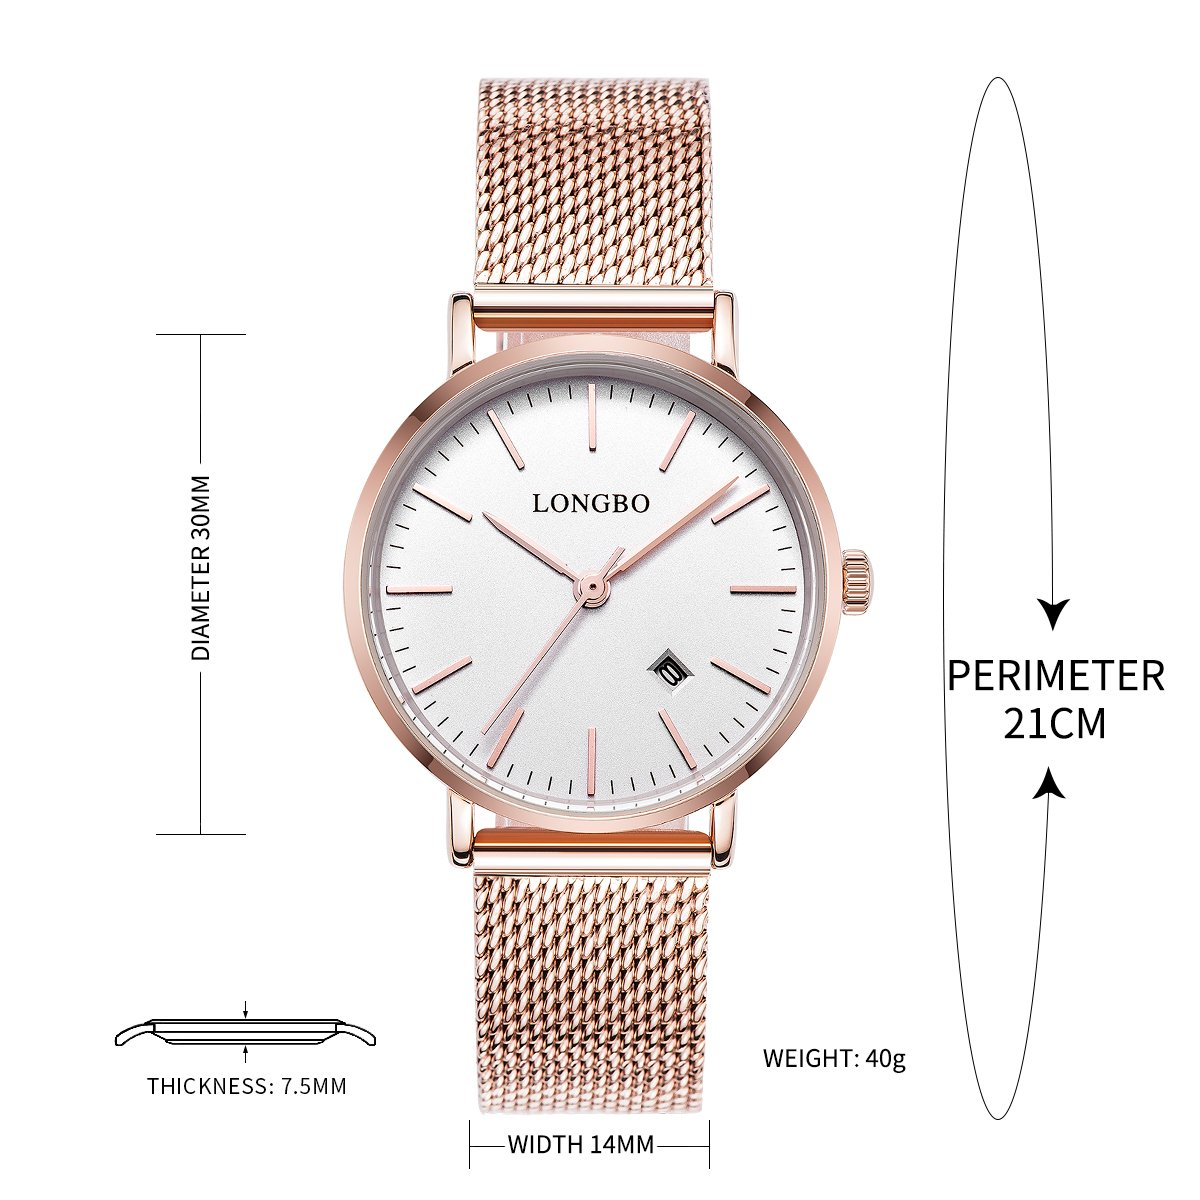 91615ee40a9e42 Amazon.com: LONGBO Simple Couple Watches Stainless Steel Band Analog  Display Quartz Women Watch Rose Gold Ultra Thin Dial Business Wristwatch  Date ...